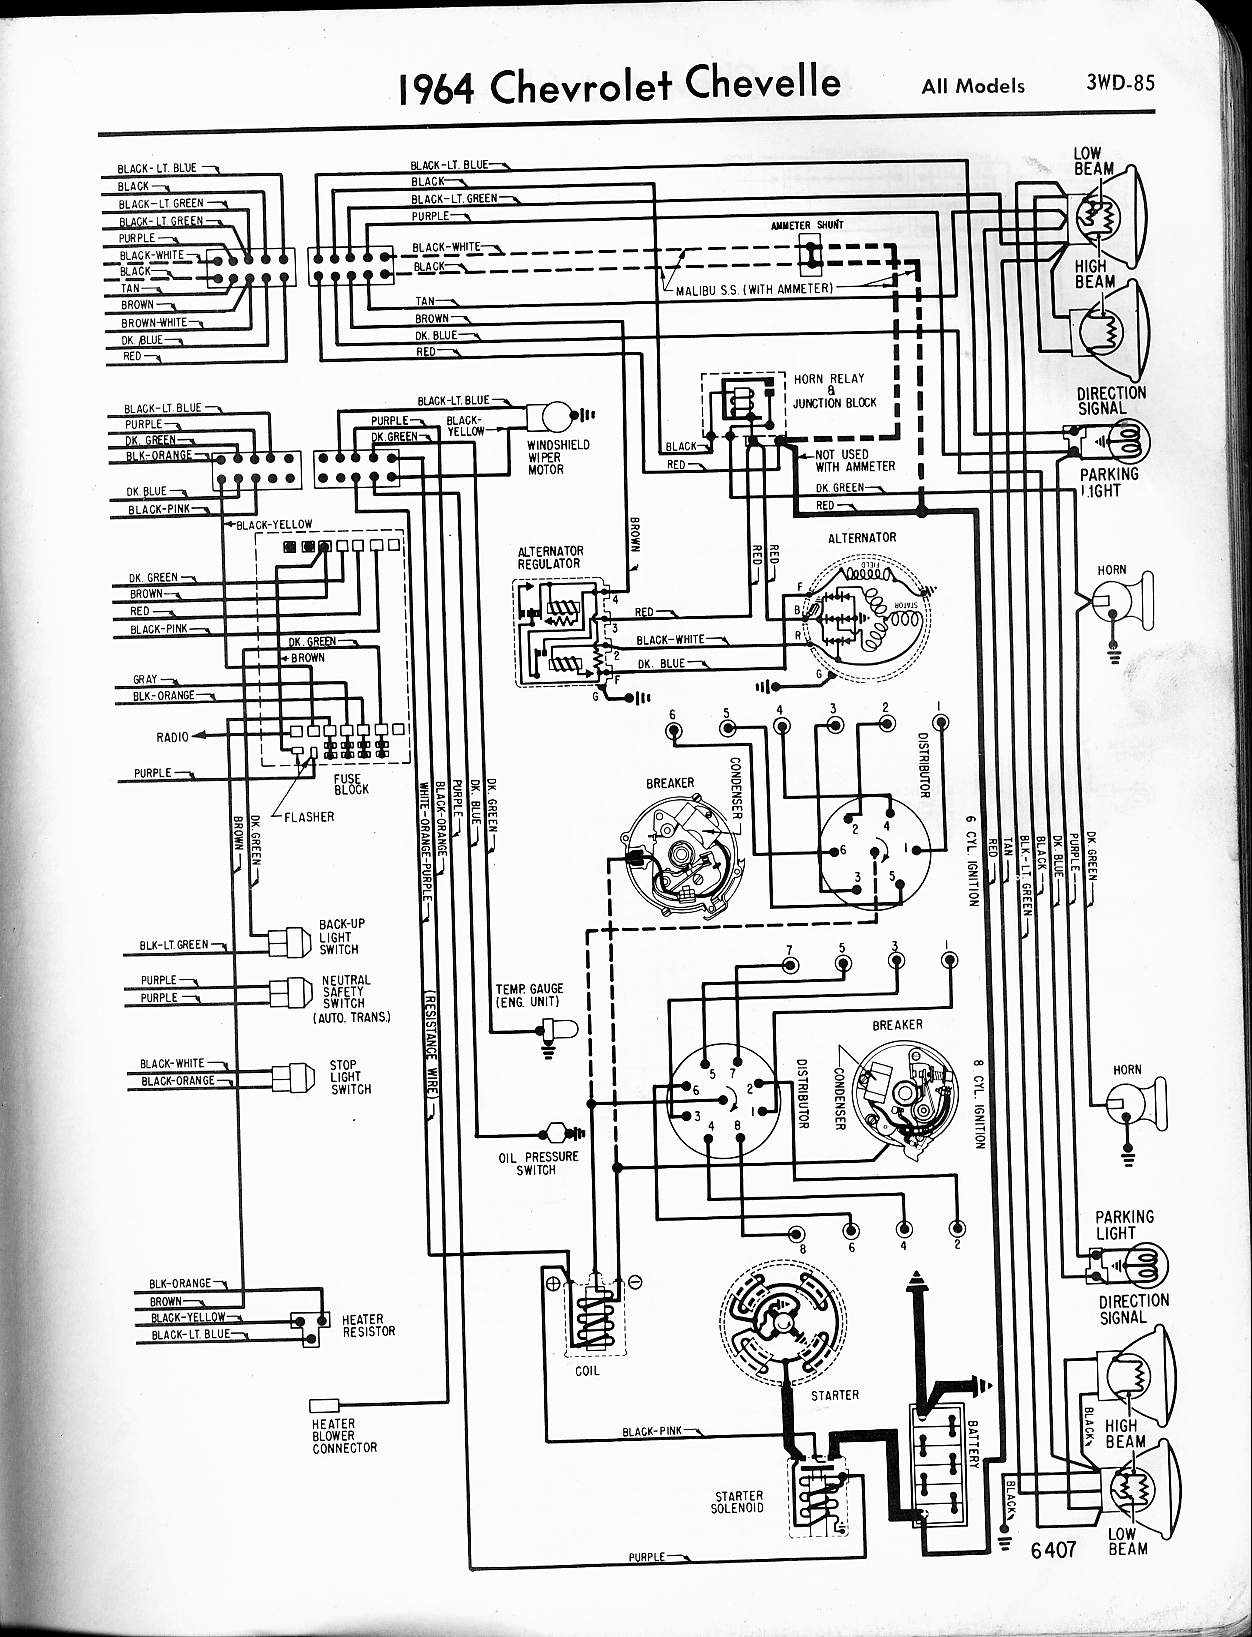 1976 Mustang Wiring Diagram Library 1966 Alternator Chevy Diagrams Camaro 1964 Chevelle Figure A B